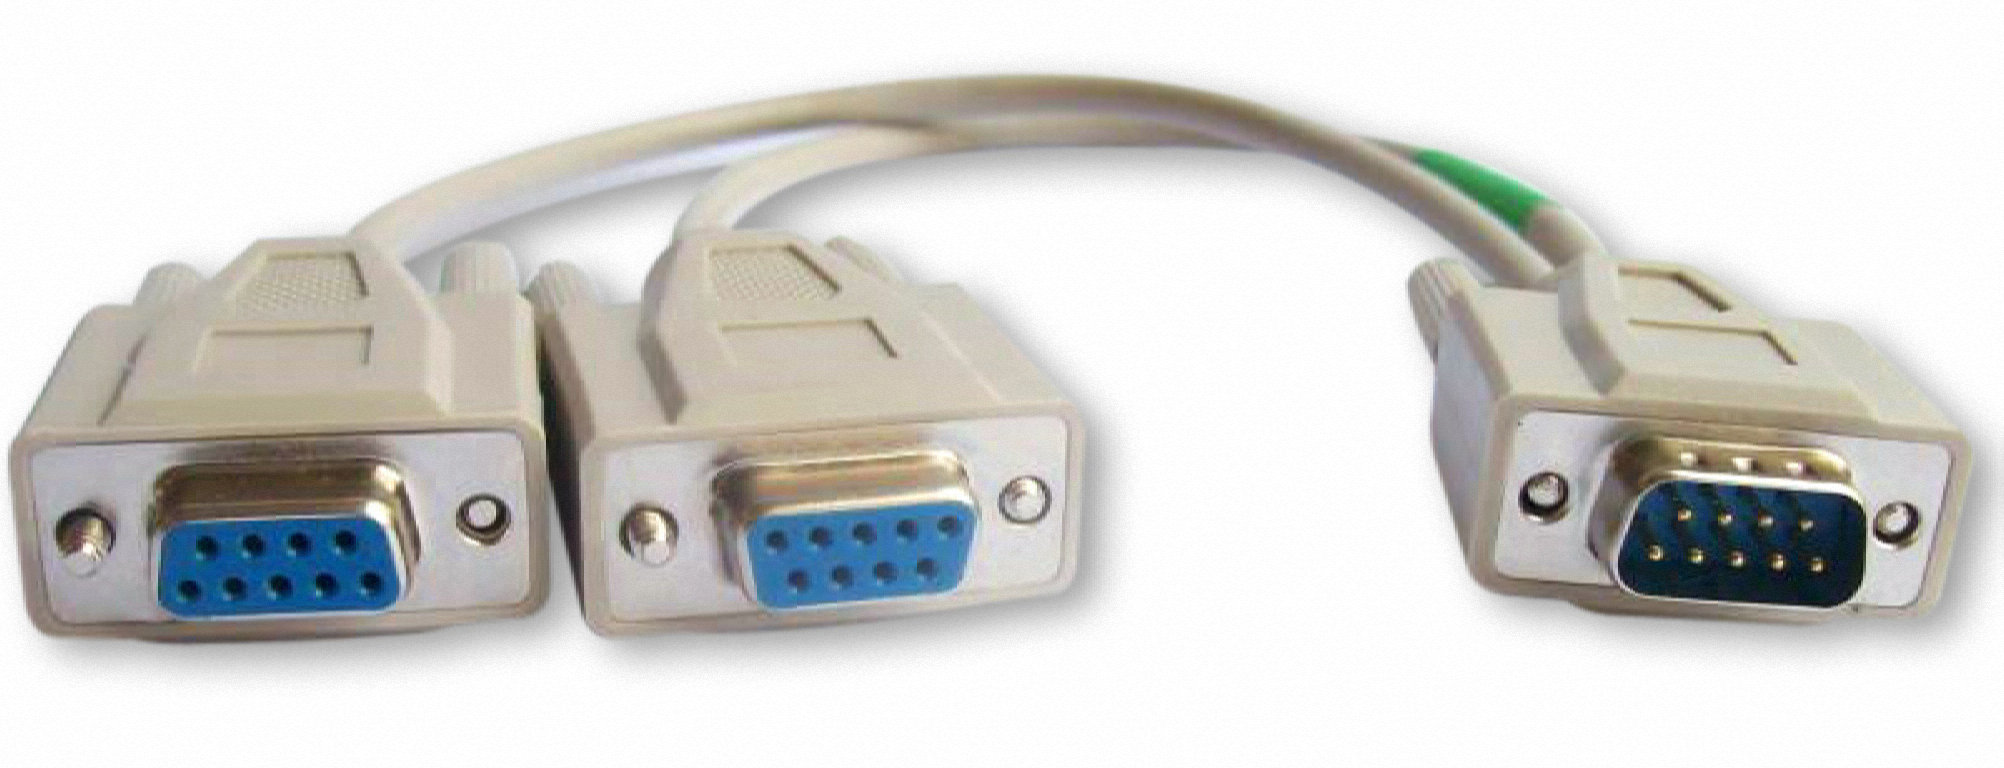 1 Foot 9 Pin Serial Splitter Cable Db9 1m 2f Rs232 Usb To Db9m Schematic Copyright 2004 2018 Your Store Inc All Rights Reserved